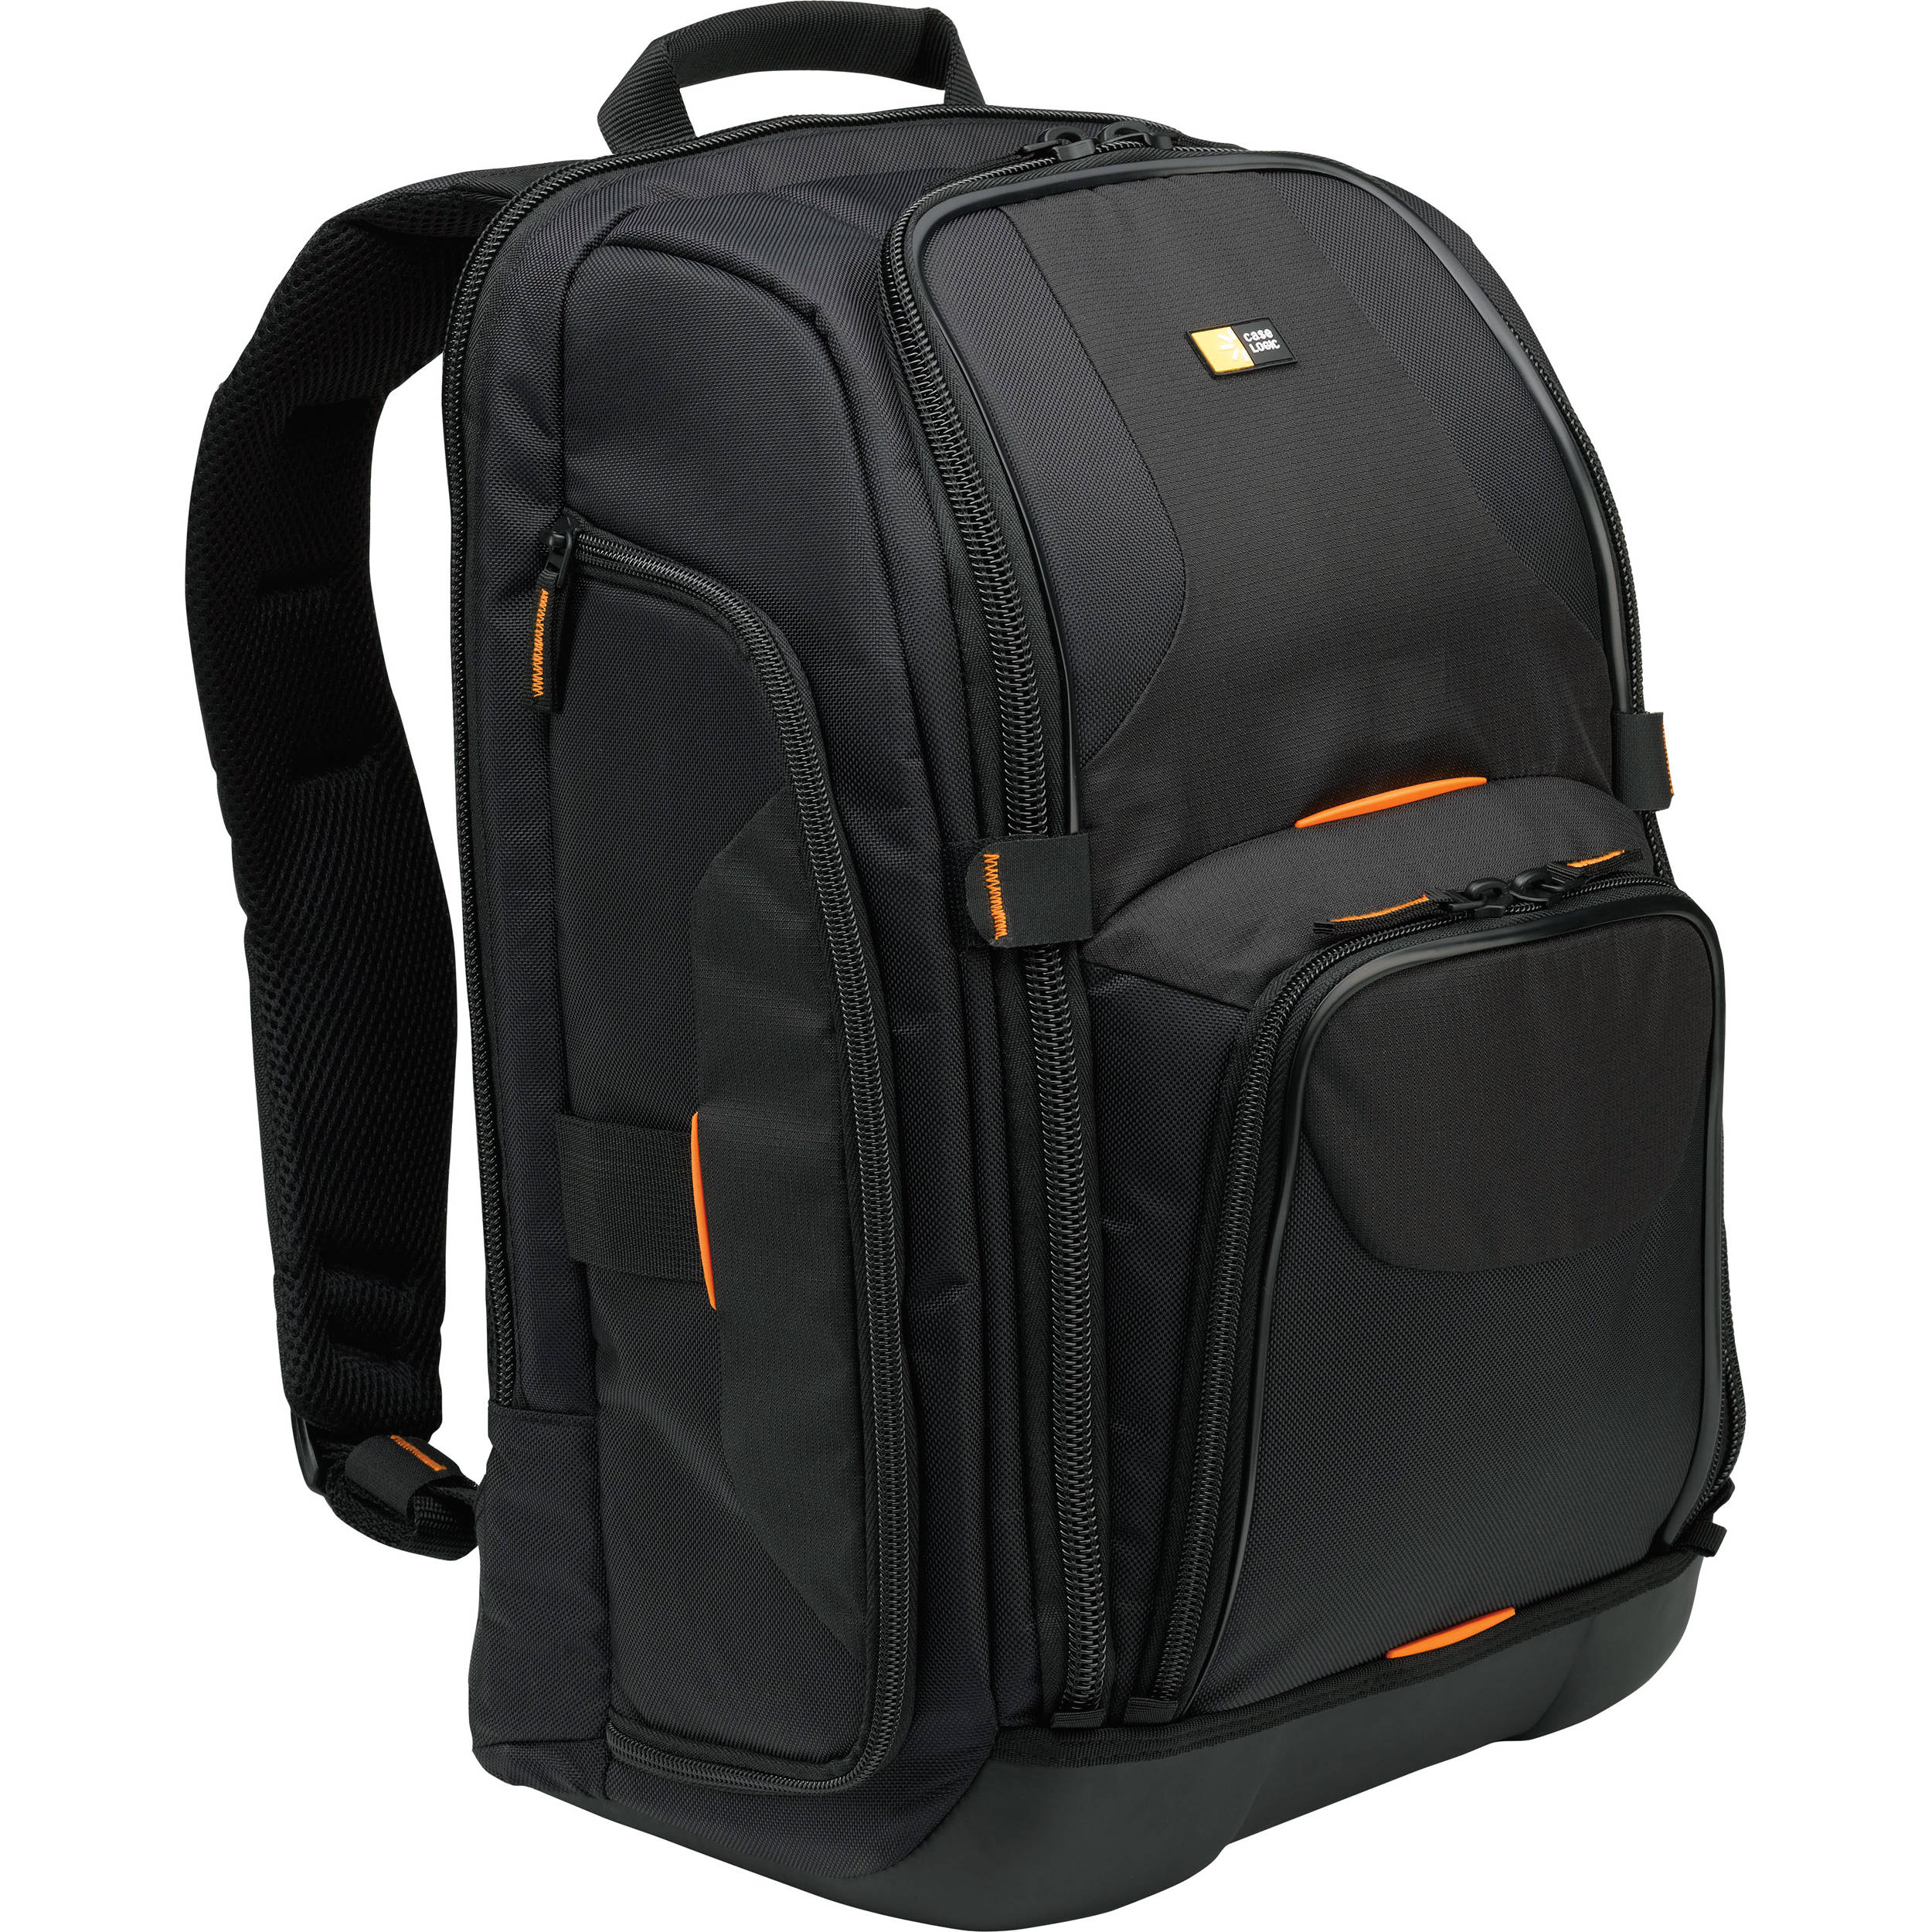 530c9ce7b045 backpack cheap   OFF55% The Largest Catalog Discounts